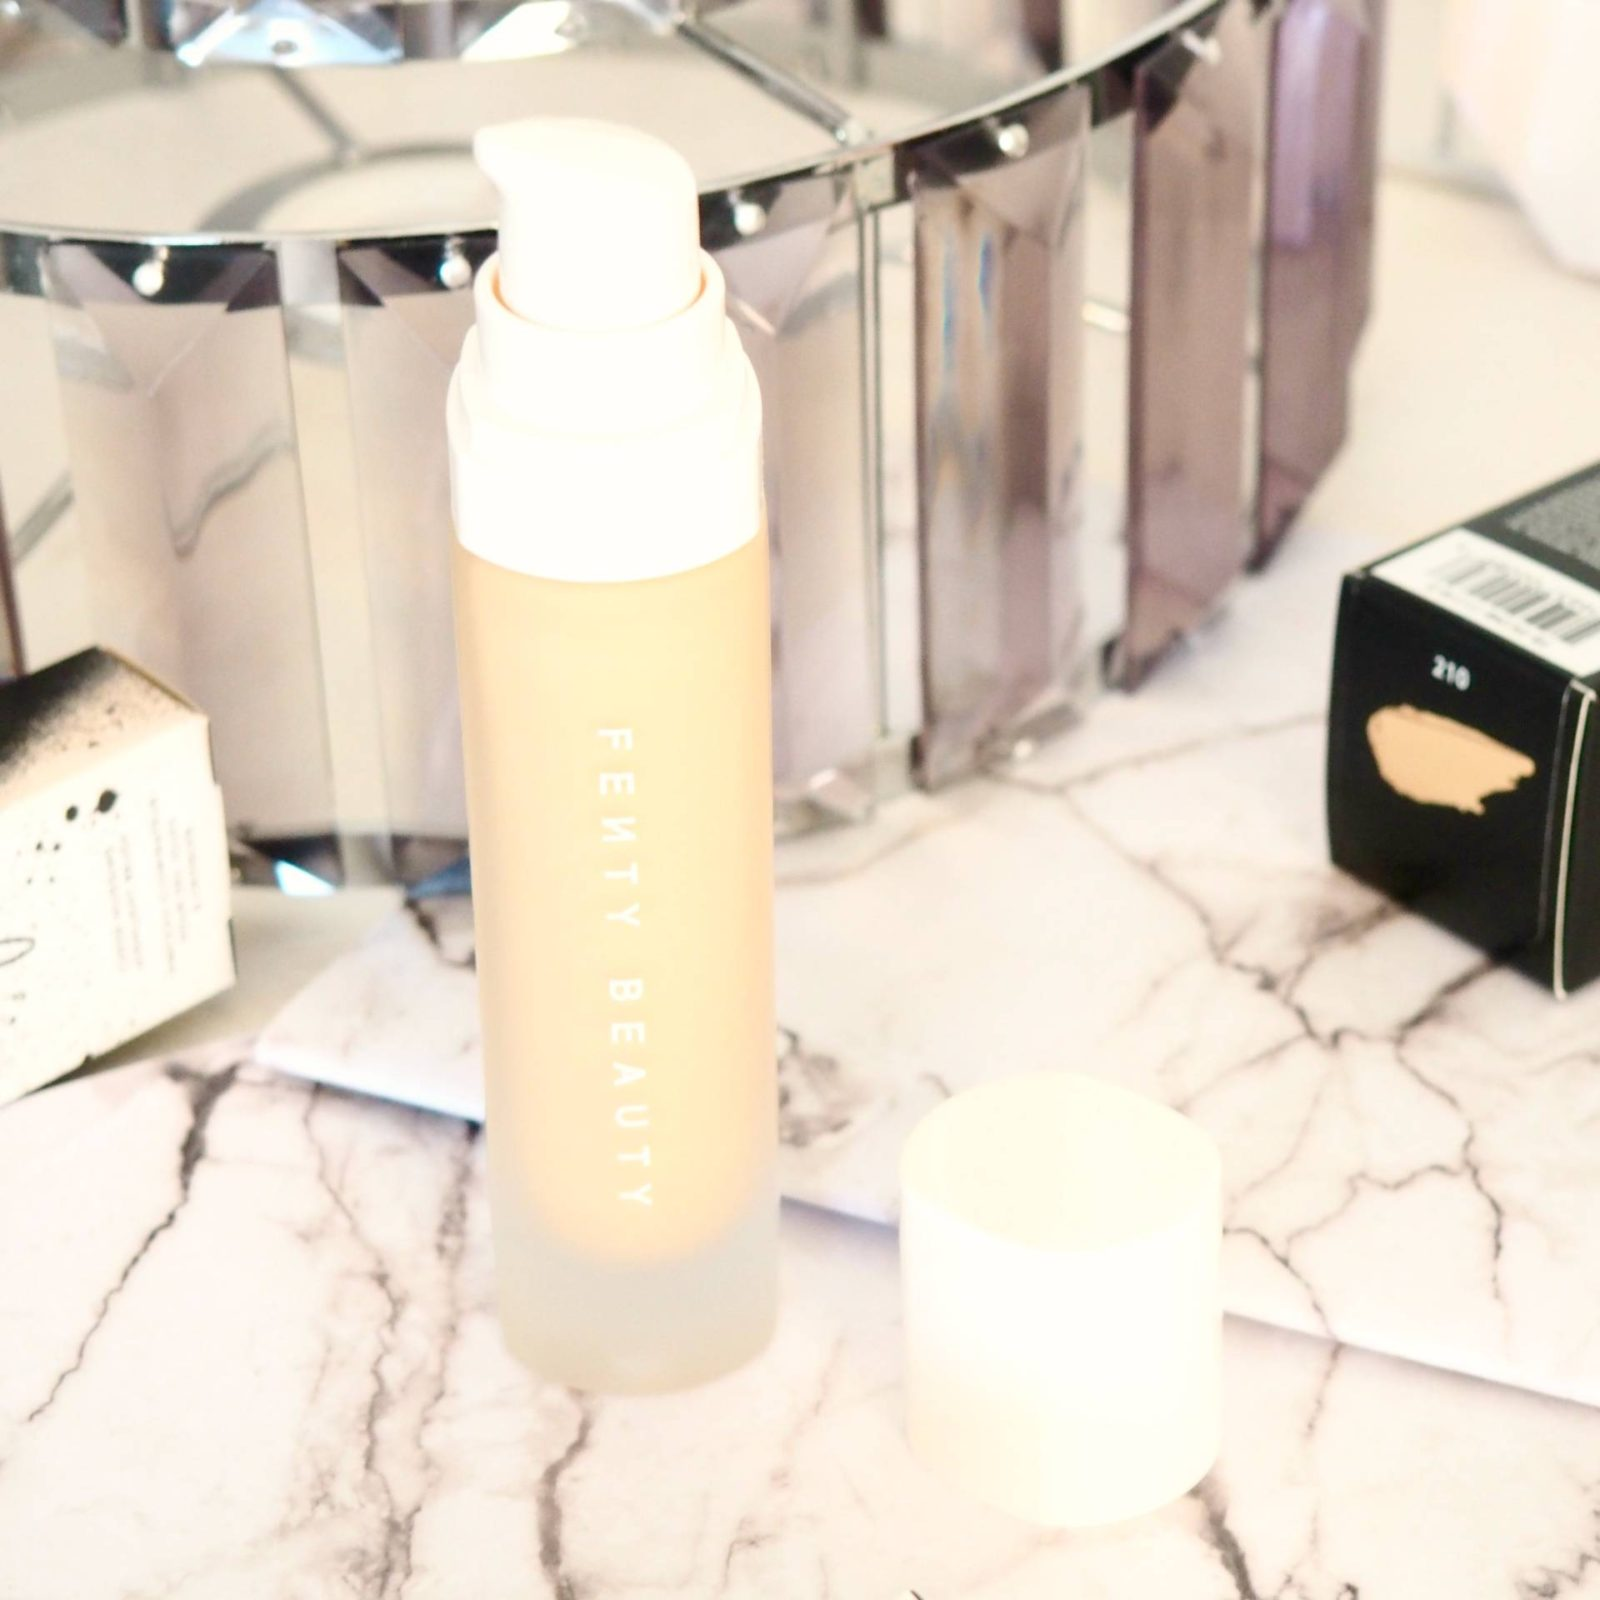 Fenty Beauty Pro Filt'r Foundation Review and Swatches